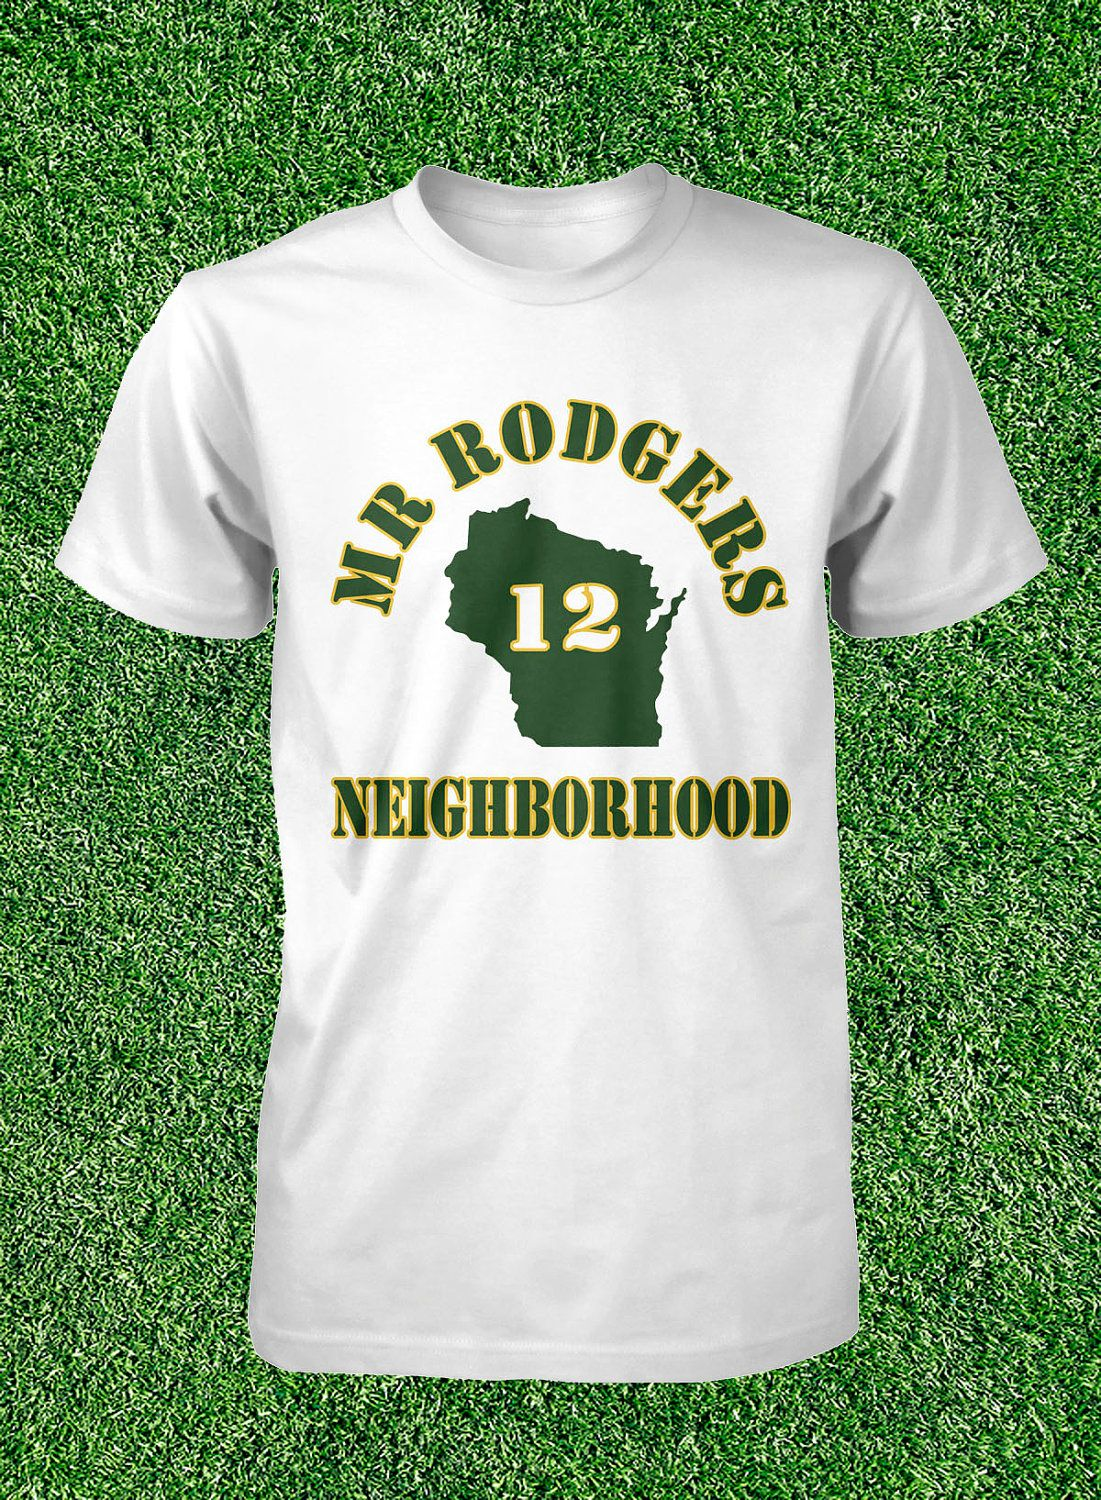 Mr Rodgers Neighborhood T Shirt Aaron Rodgers Green Bay Packers Mens Size S  M L XL Cotton Short Sleeve.  14.99 ecb2a09e0